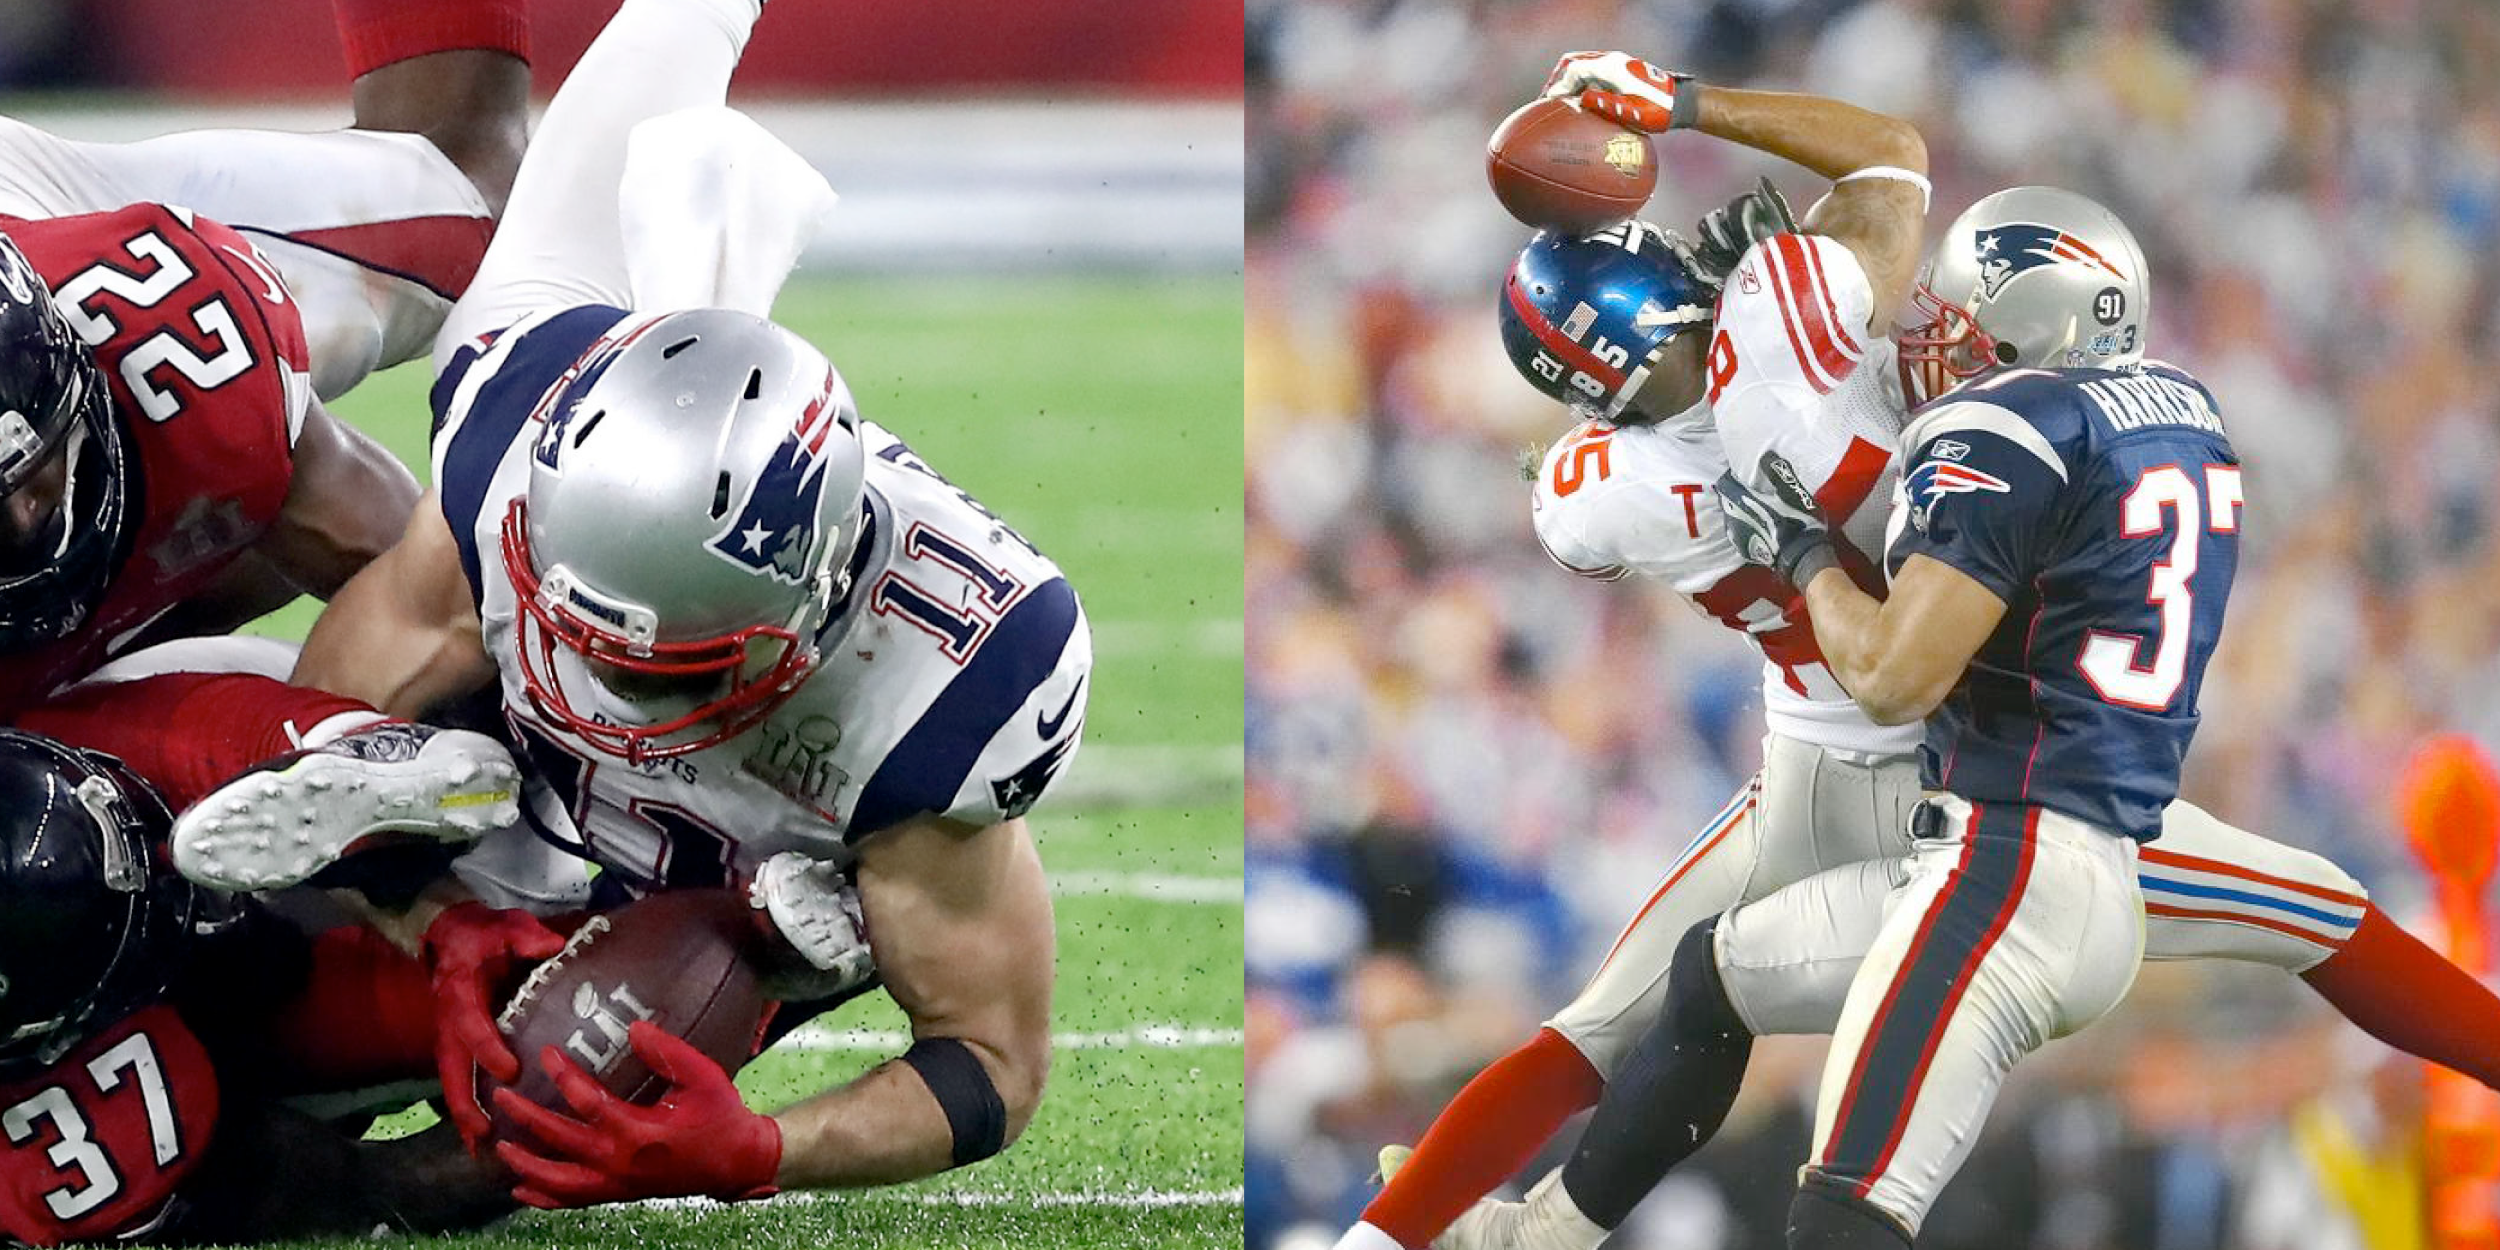 Julian Edelman Shoe Catch v David Tyree Helmet Catch